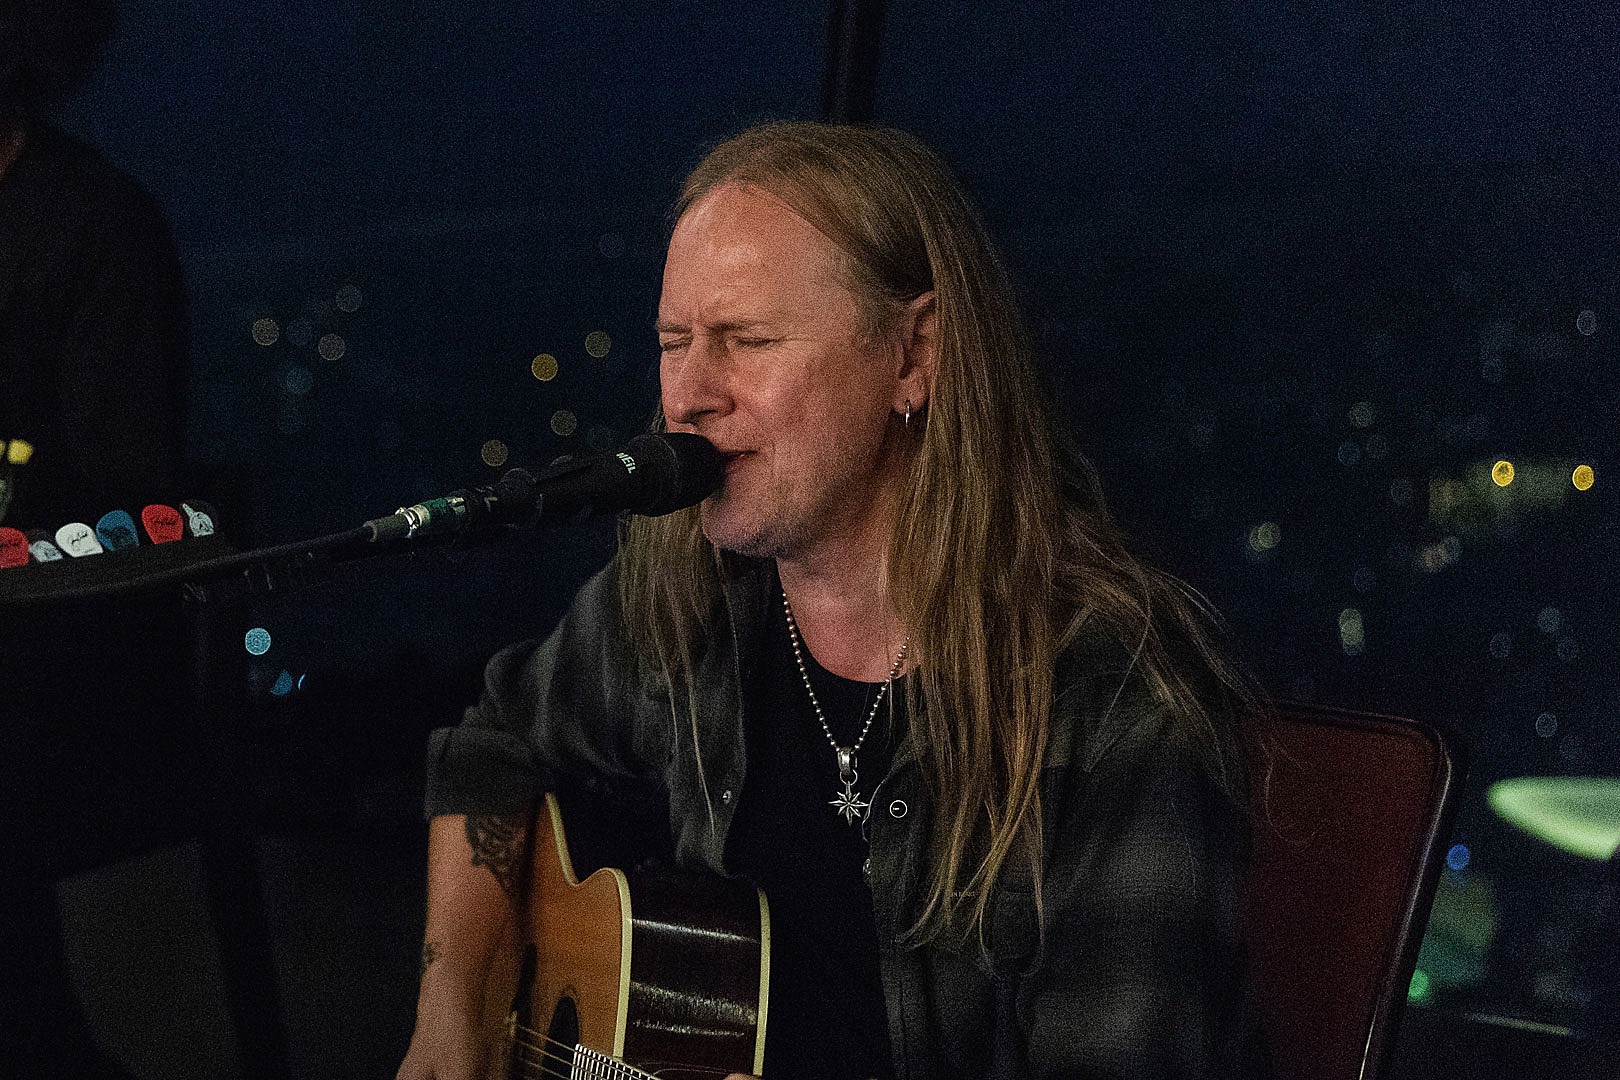 Jerry Cantrell Welcomes Greg Puciato, James Lomenzo + More at L.A. Solo Show